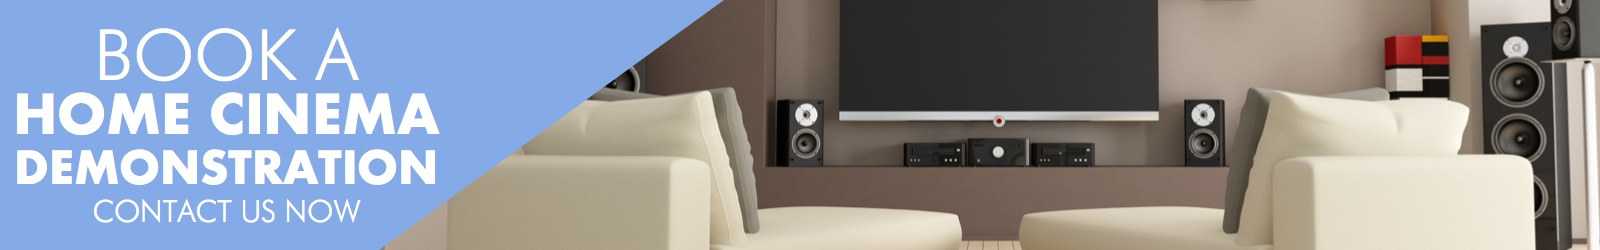 Book a Home Cinema Demonstration